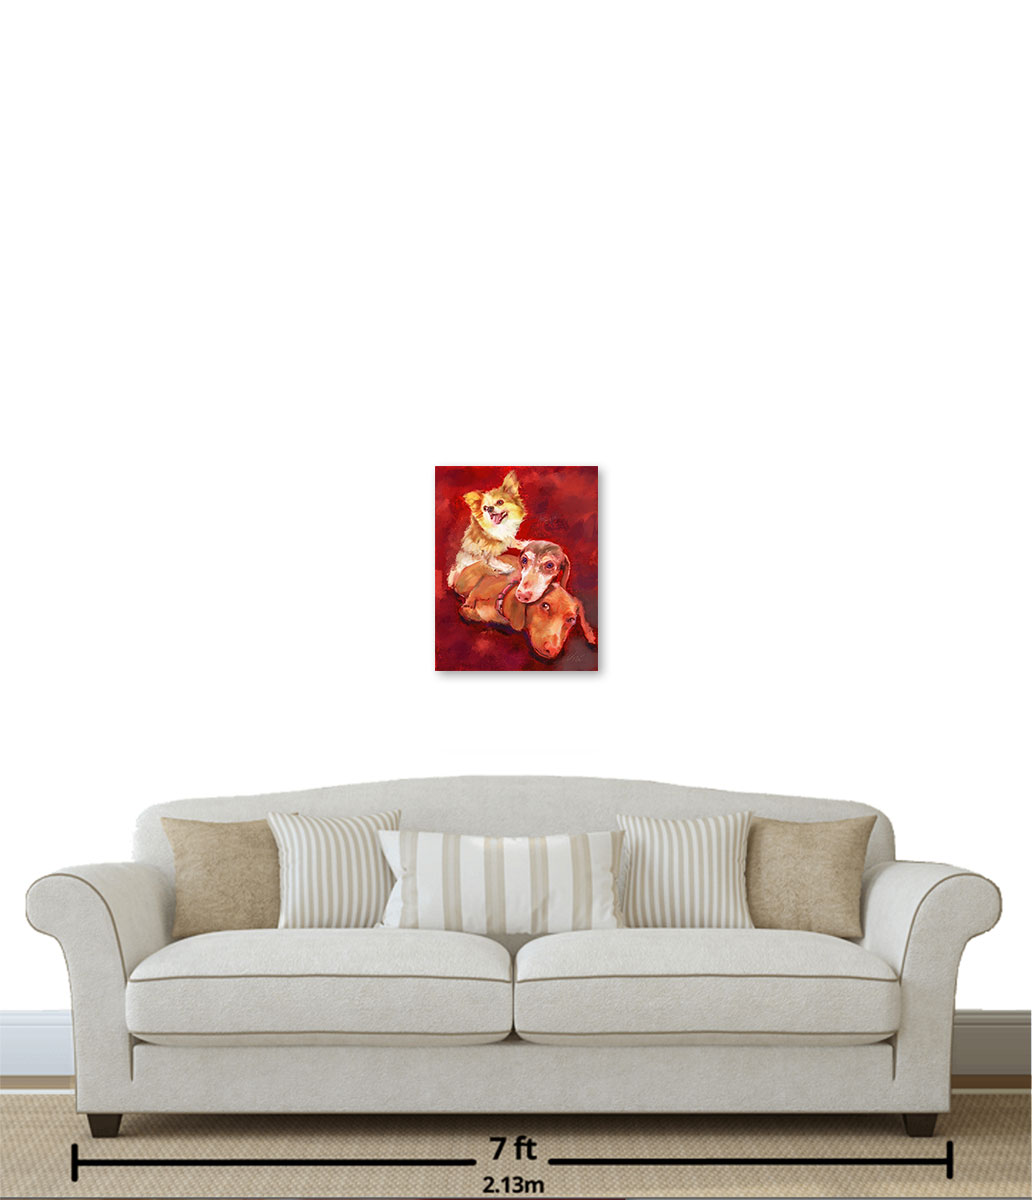 """16""""x20"""" Canvas over a 7 foot couch"""